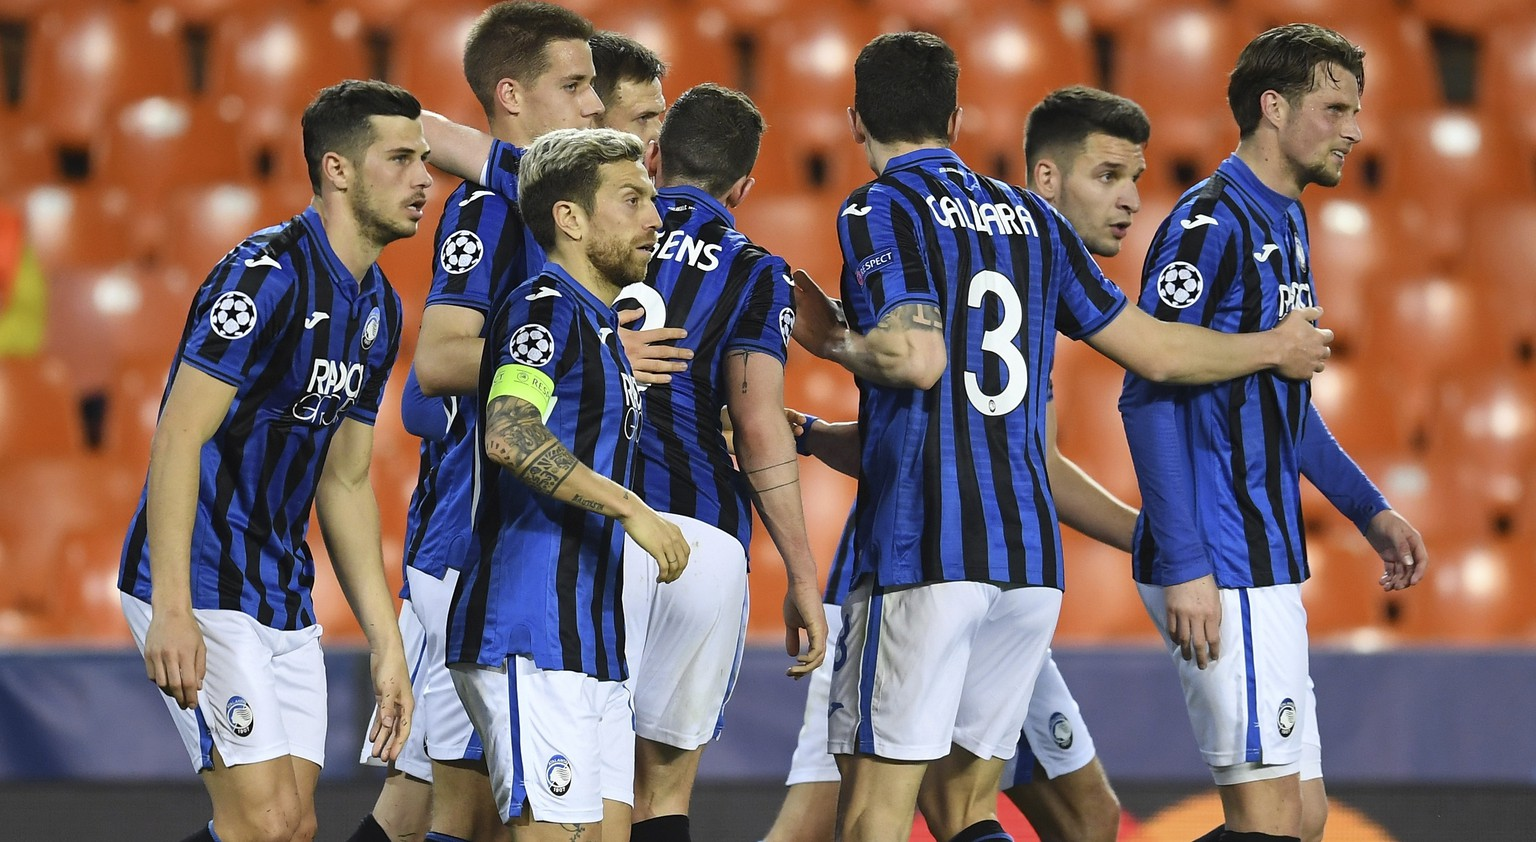 Atalanta's Josip Ilicic celebrates with teammates after scoring a penalty kick his side's second goal during the Champions League round of 16 second leg soccer match between Valencia and Atalanta in Valencia, Spain, Tuesday March 10, 2020. The match is being in an empty stadium because of the coronavirus outbreak. (UEFA via AP)